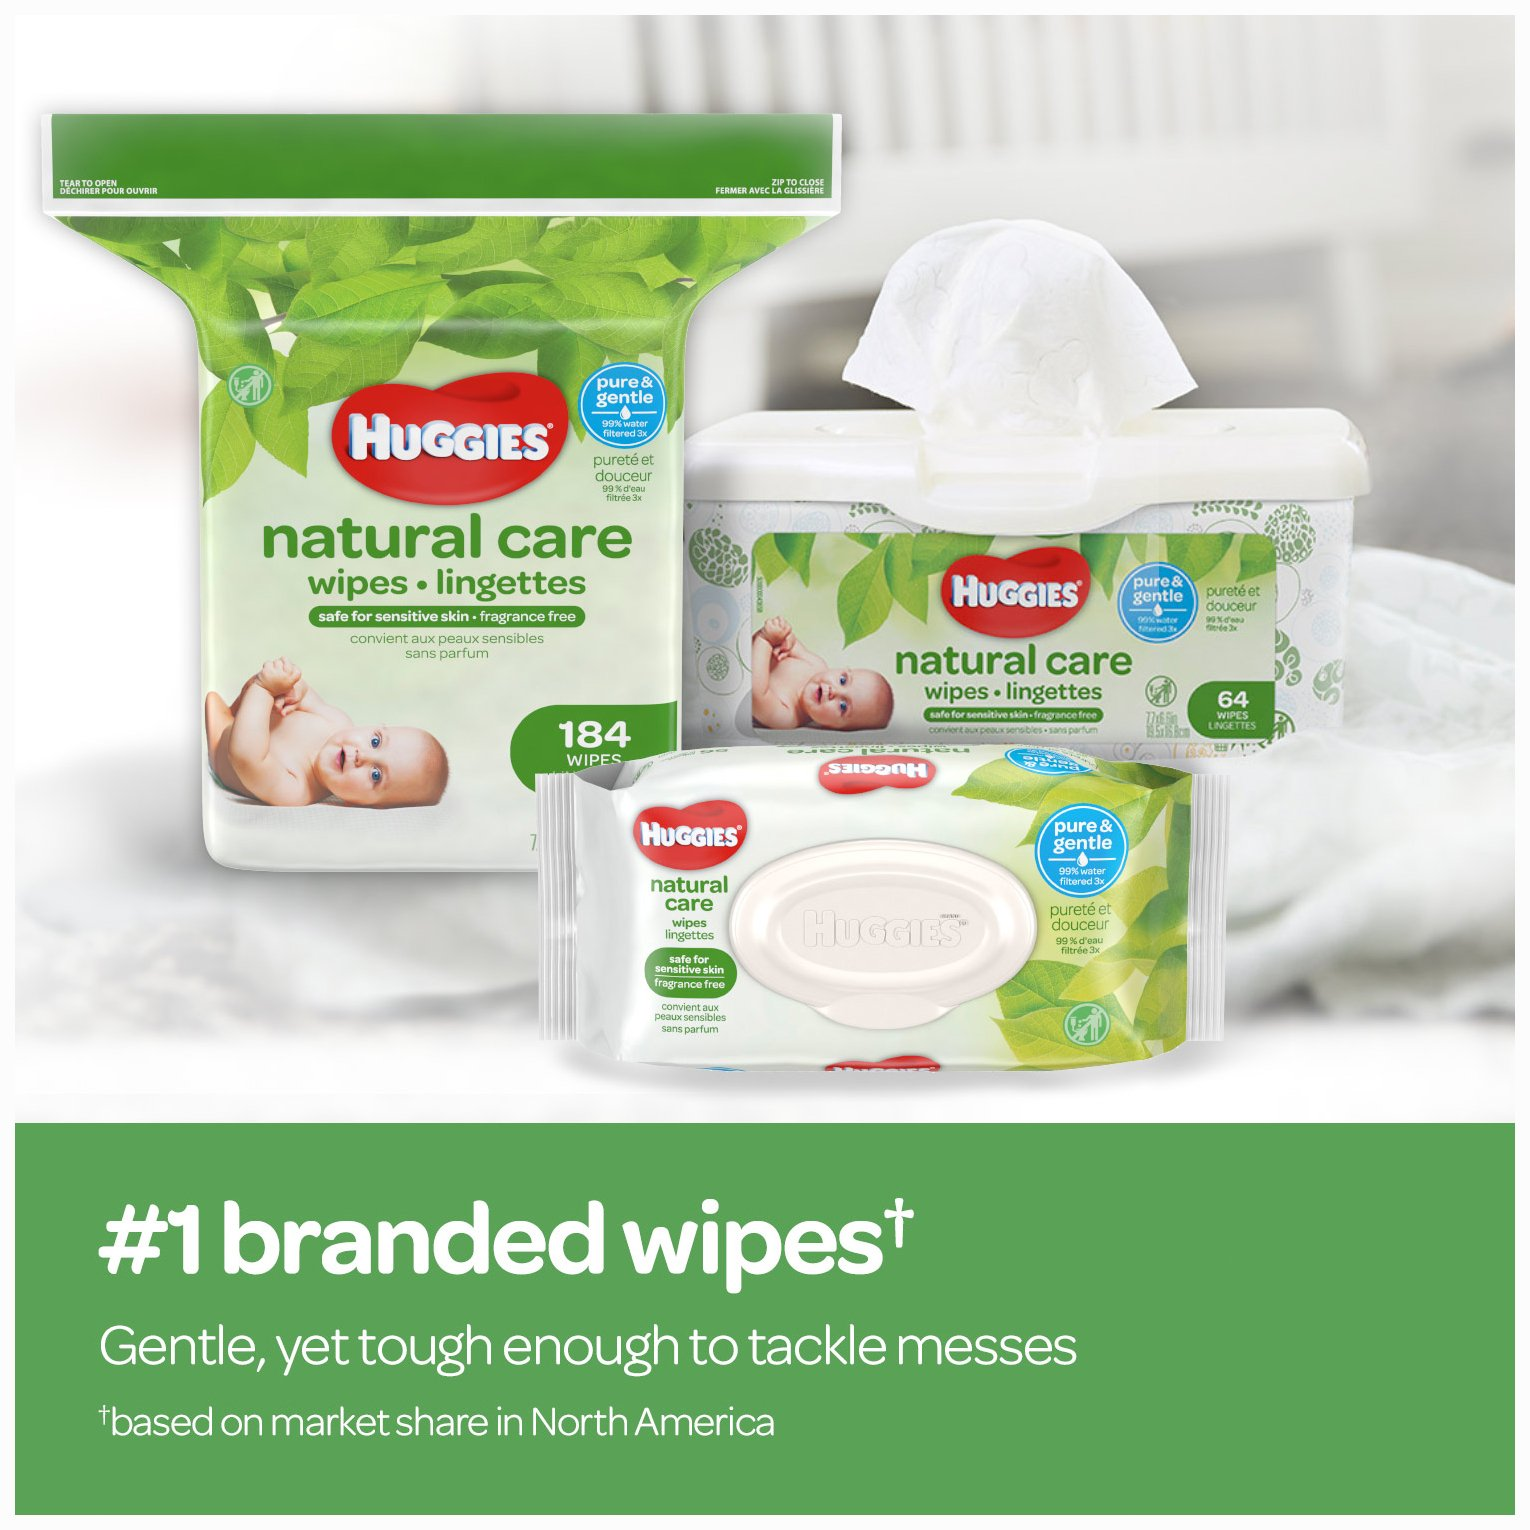 Huggies Natural Care Unscented Baby Wipes, Sensitive, Hypoallergenic, Water-Based, 3 Refill Packs, 648 Count Total by HUGGIES (Image #8)